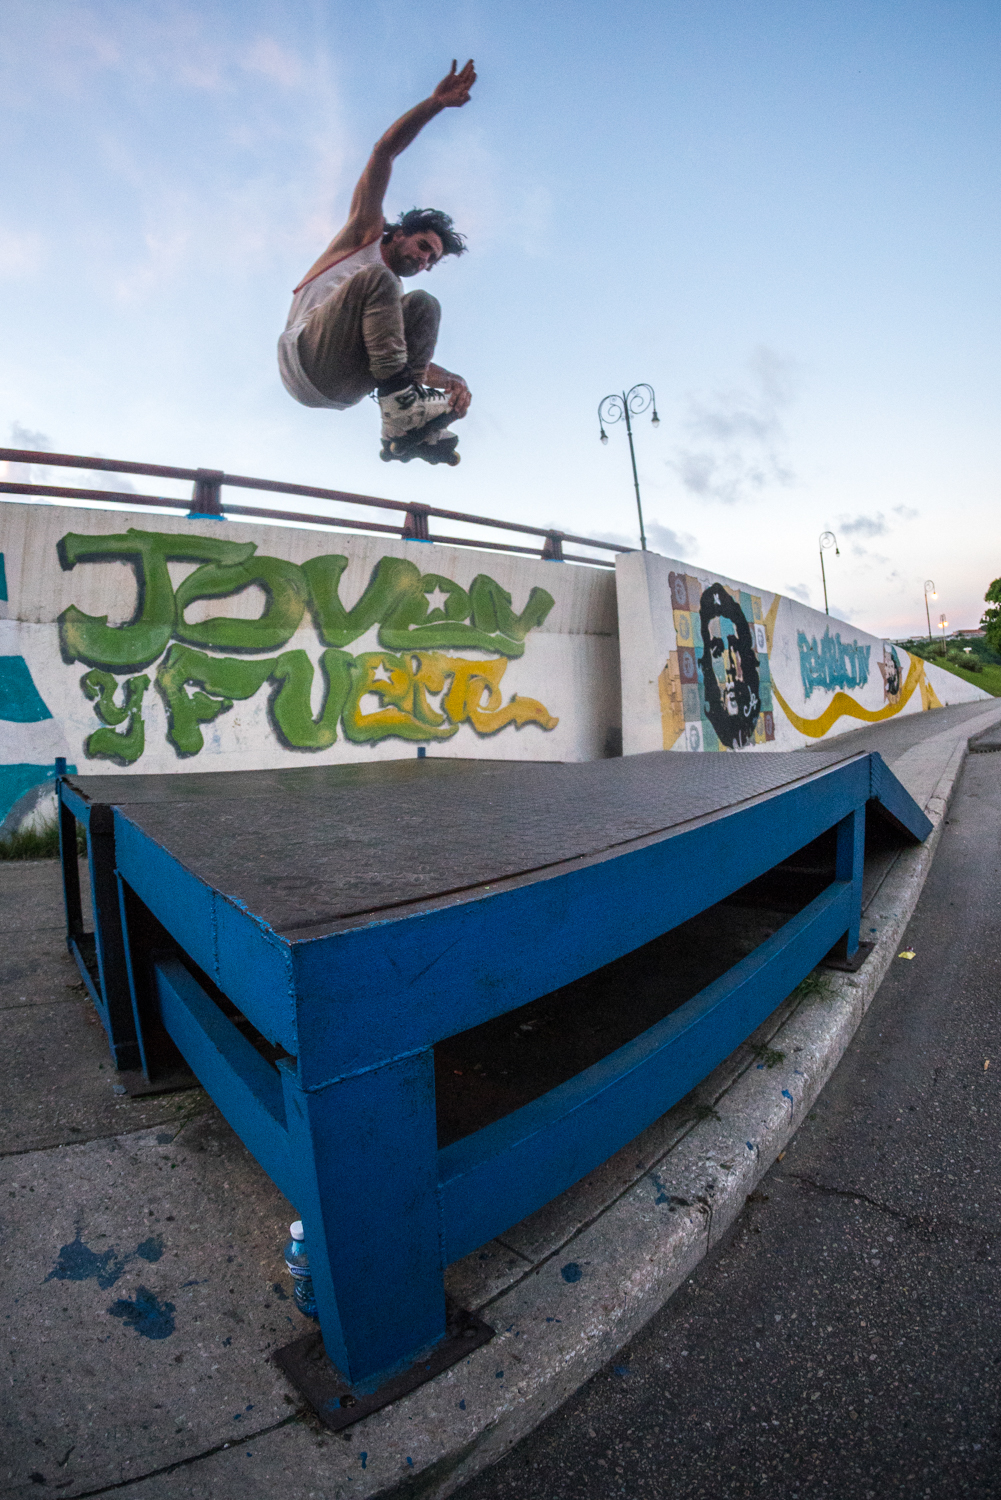 One of my goals for this trip was to get at least one clip and one photo of me blading in Cuba since no one has really seen anything come out of there before. I did my research on google earth and managed to find this ramp with Che Guevera in the background. Cuban blading perfection! Photo shot by  Jon Ortiz .  Sony A7RII, Rokinon 8mm Fisheye (iso3200, f/3.5, 1/800s)